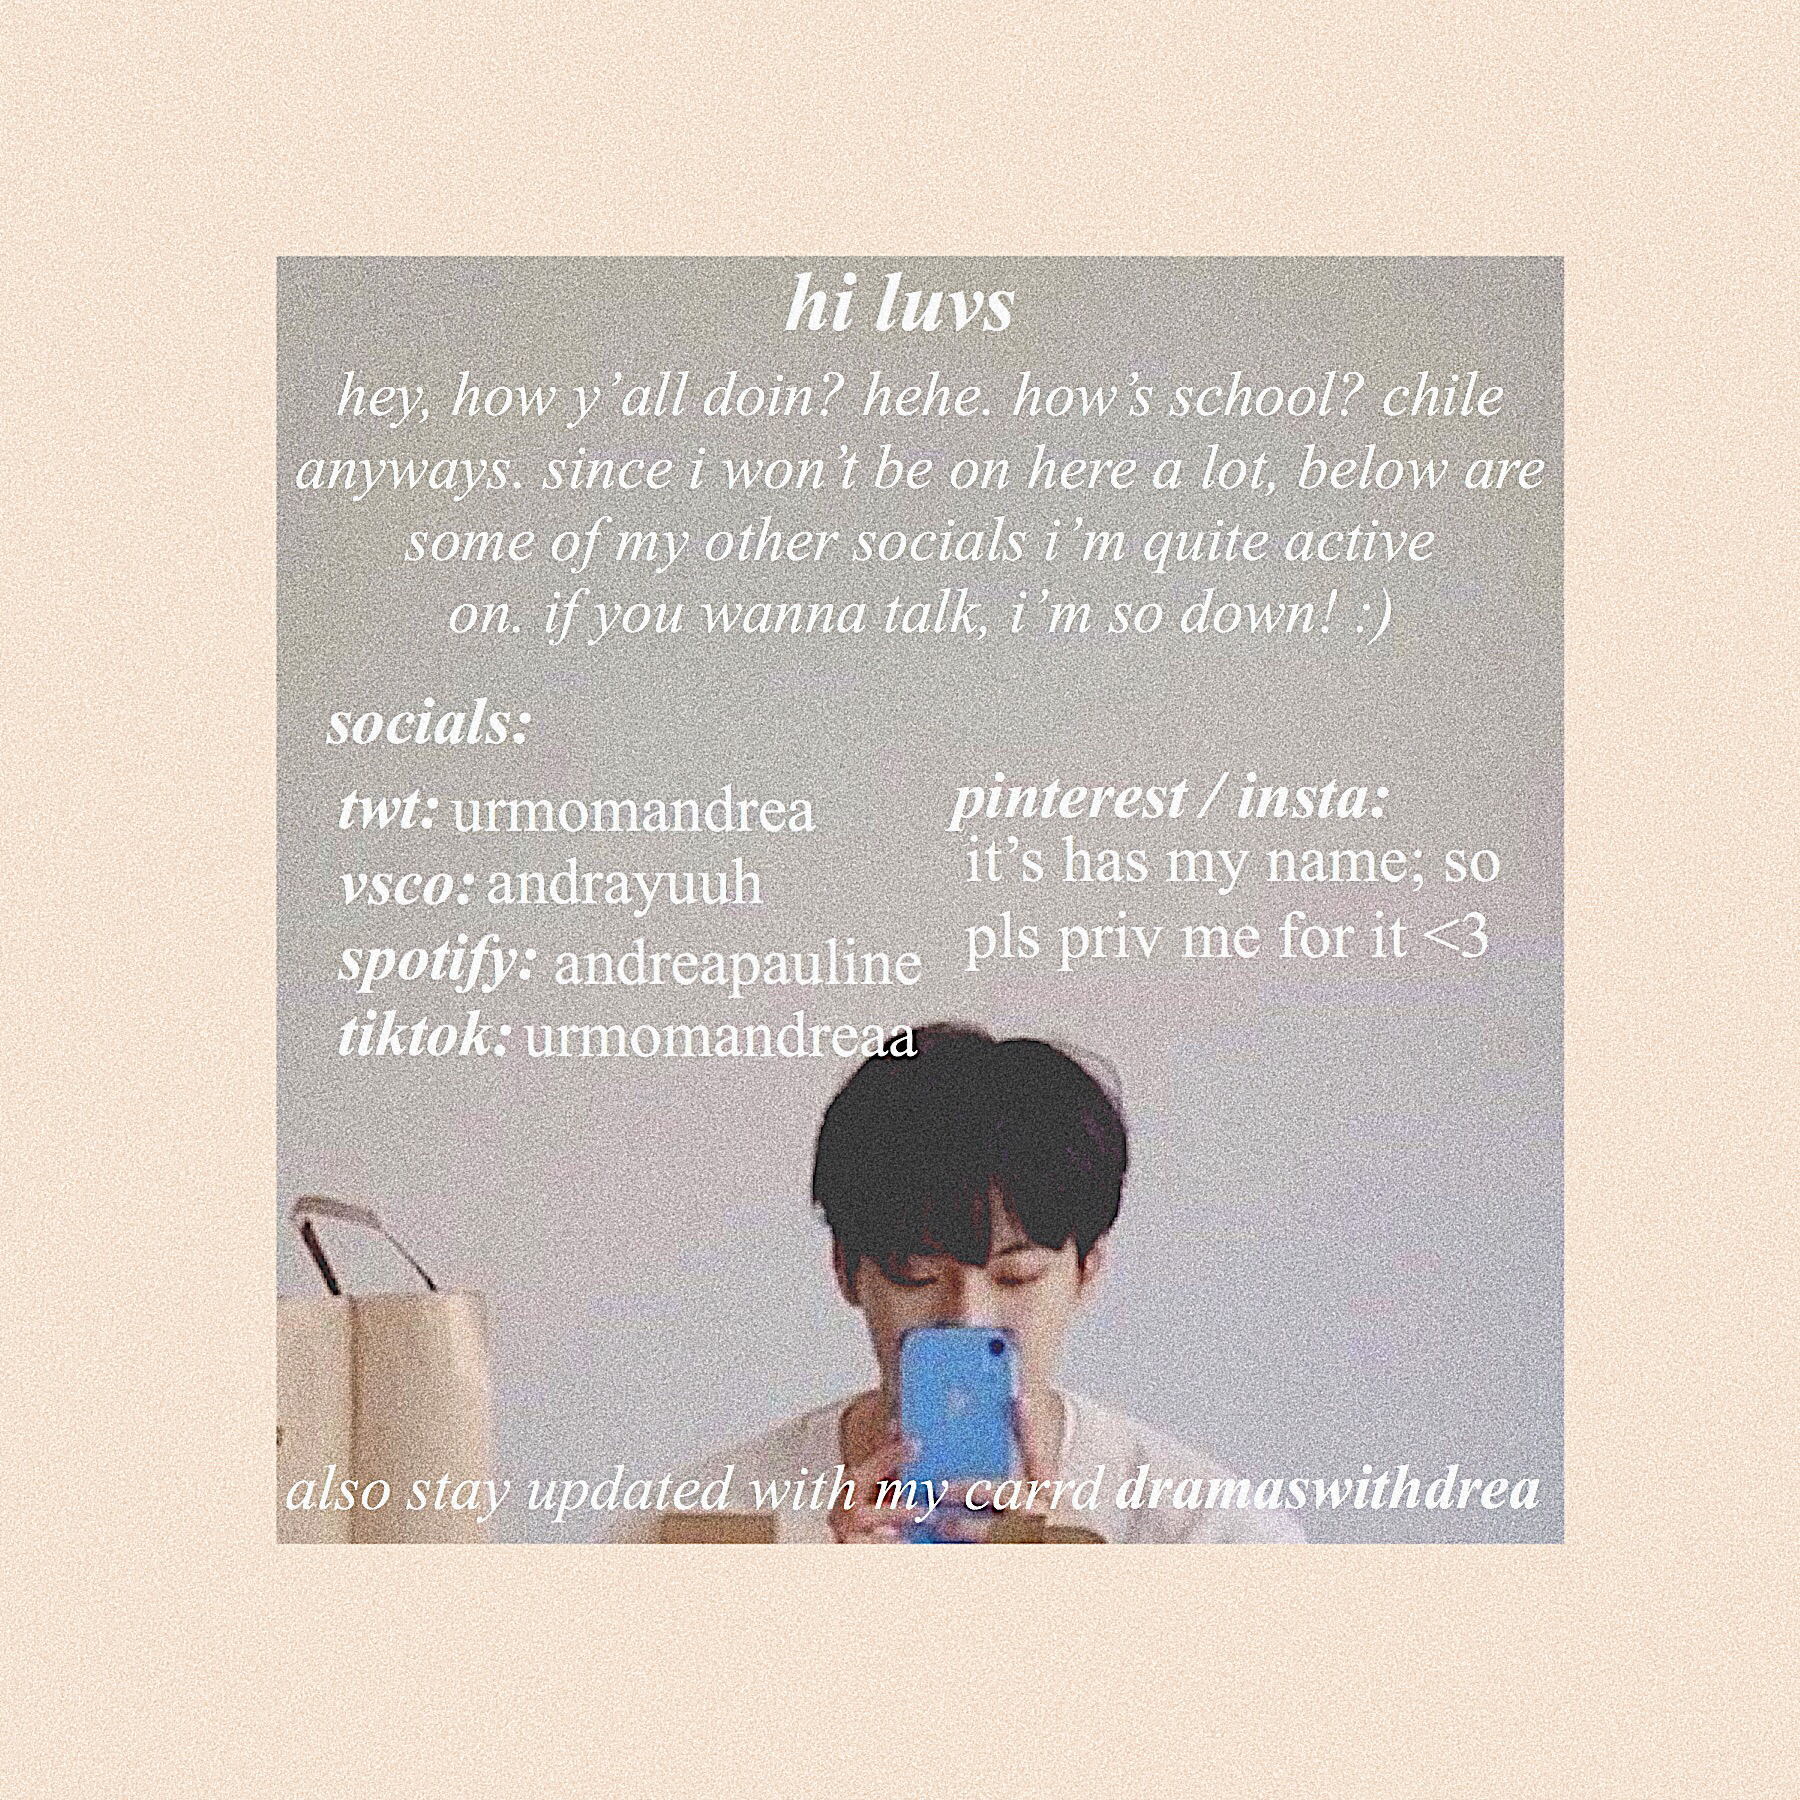 🧺 omg i finally got a twt :,) anwaysss, we can send each other random tik toks, twts, and how talk about how much life s ucks 😼 p.s my twt is just a stan acc. enjoy your day muah 💘!